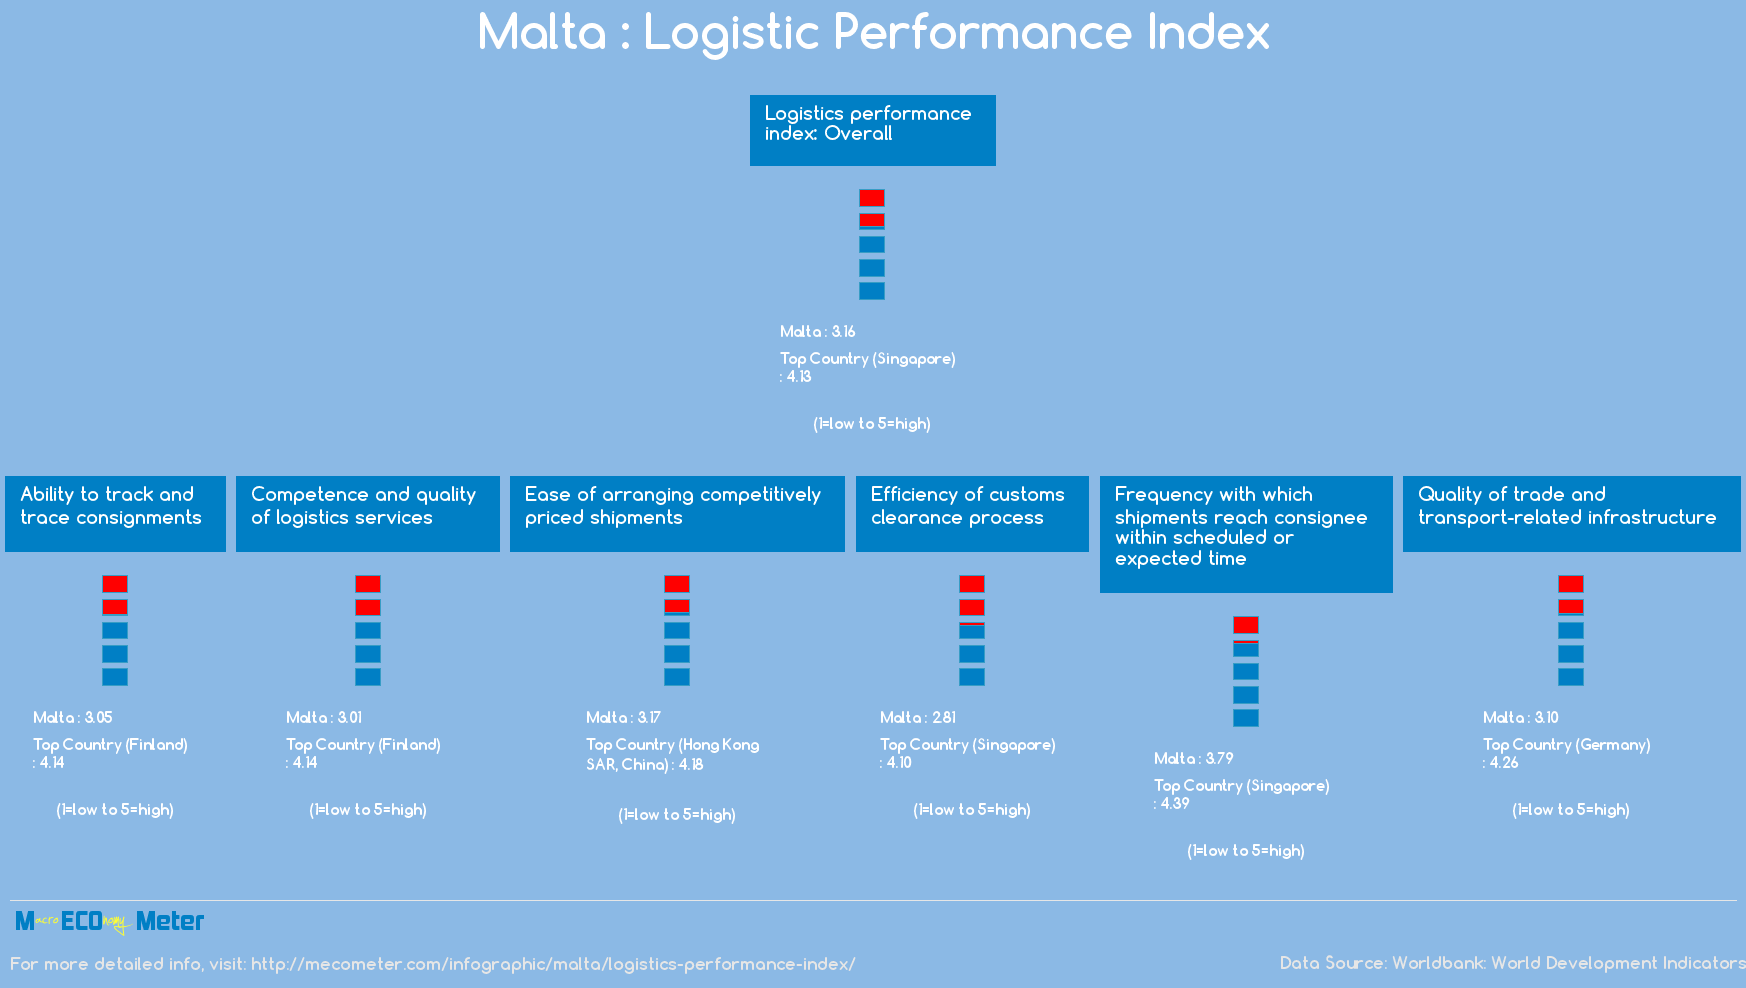 Malta : Logistic Performance Index